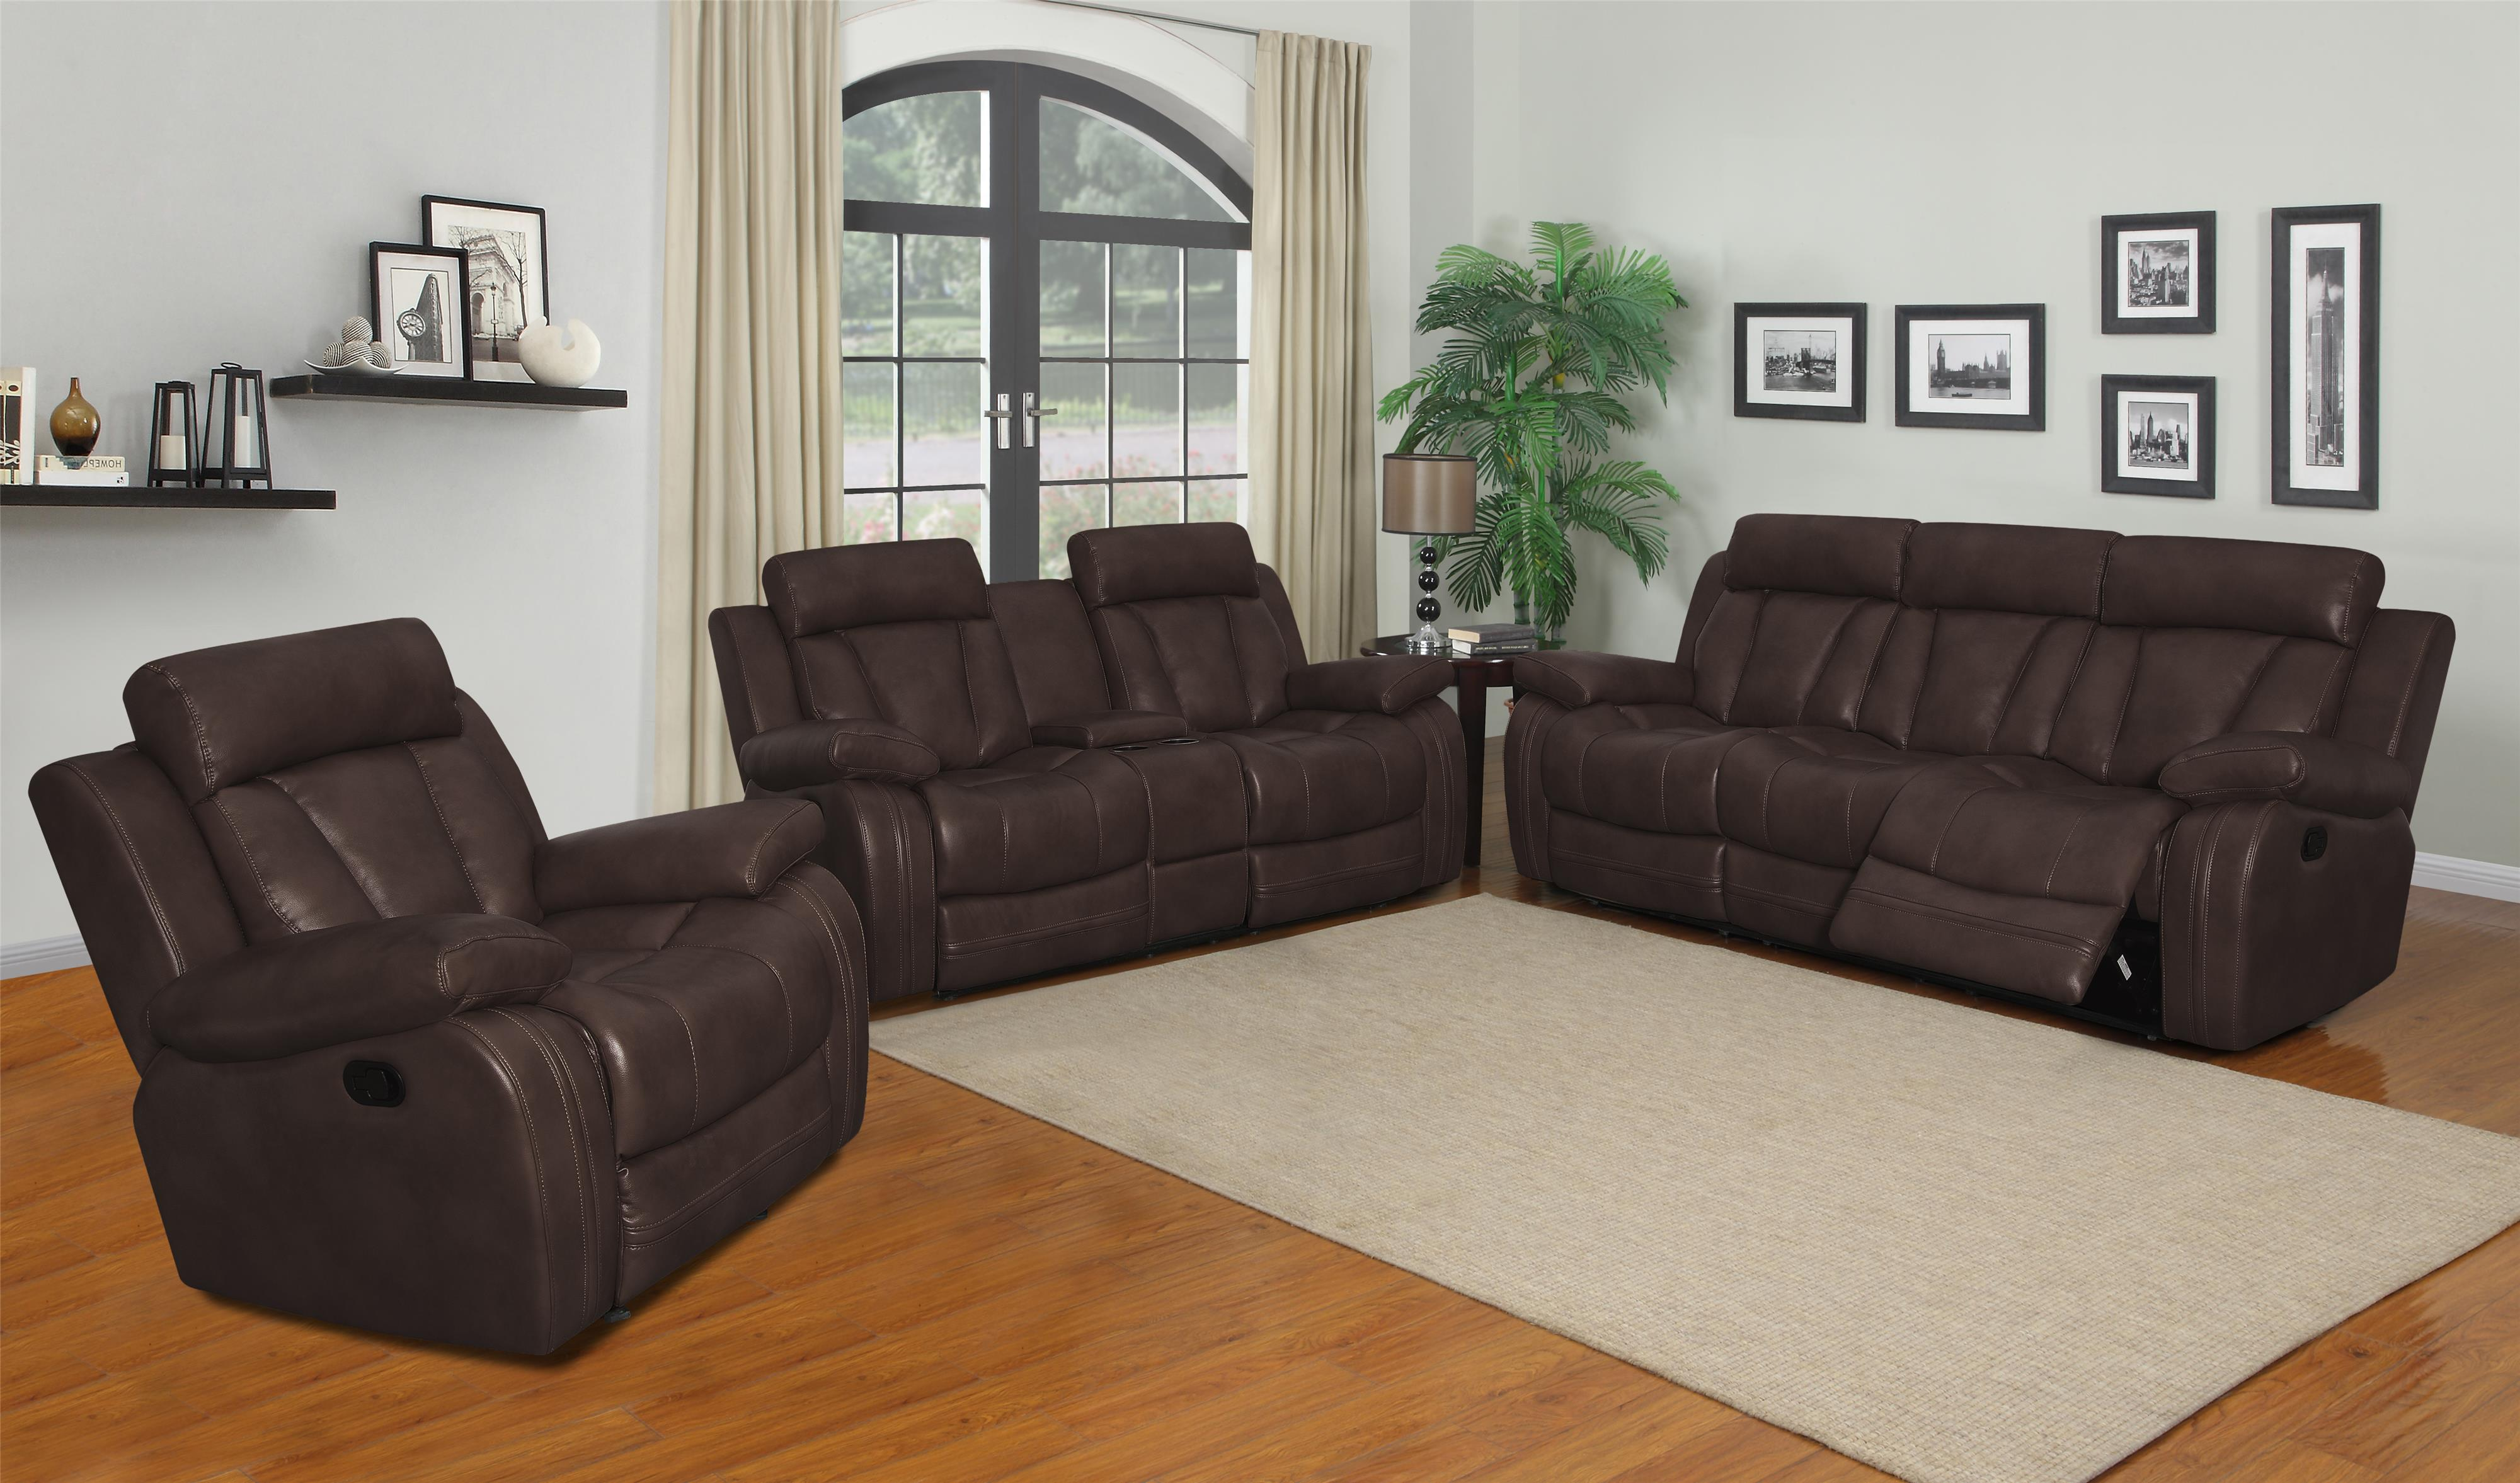 Atticus-US Reclining Living Room Group by Klaussner International at Rooms for Less